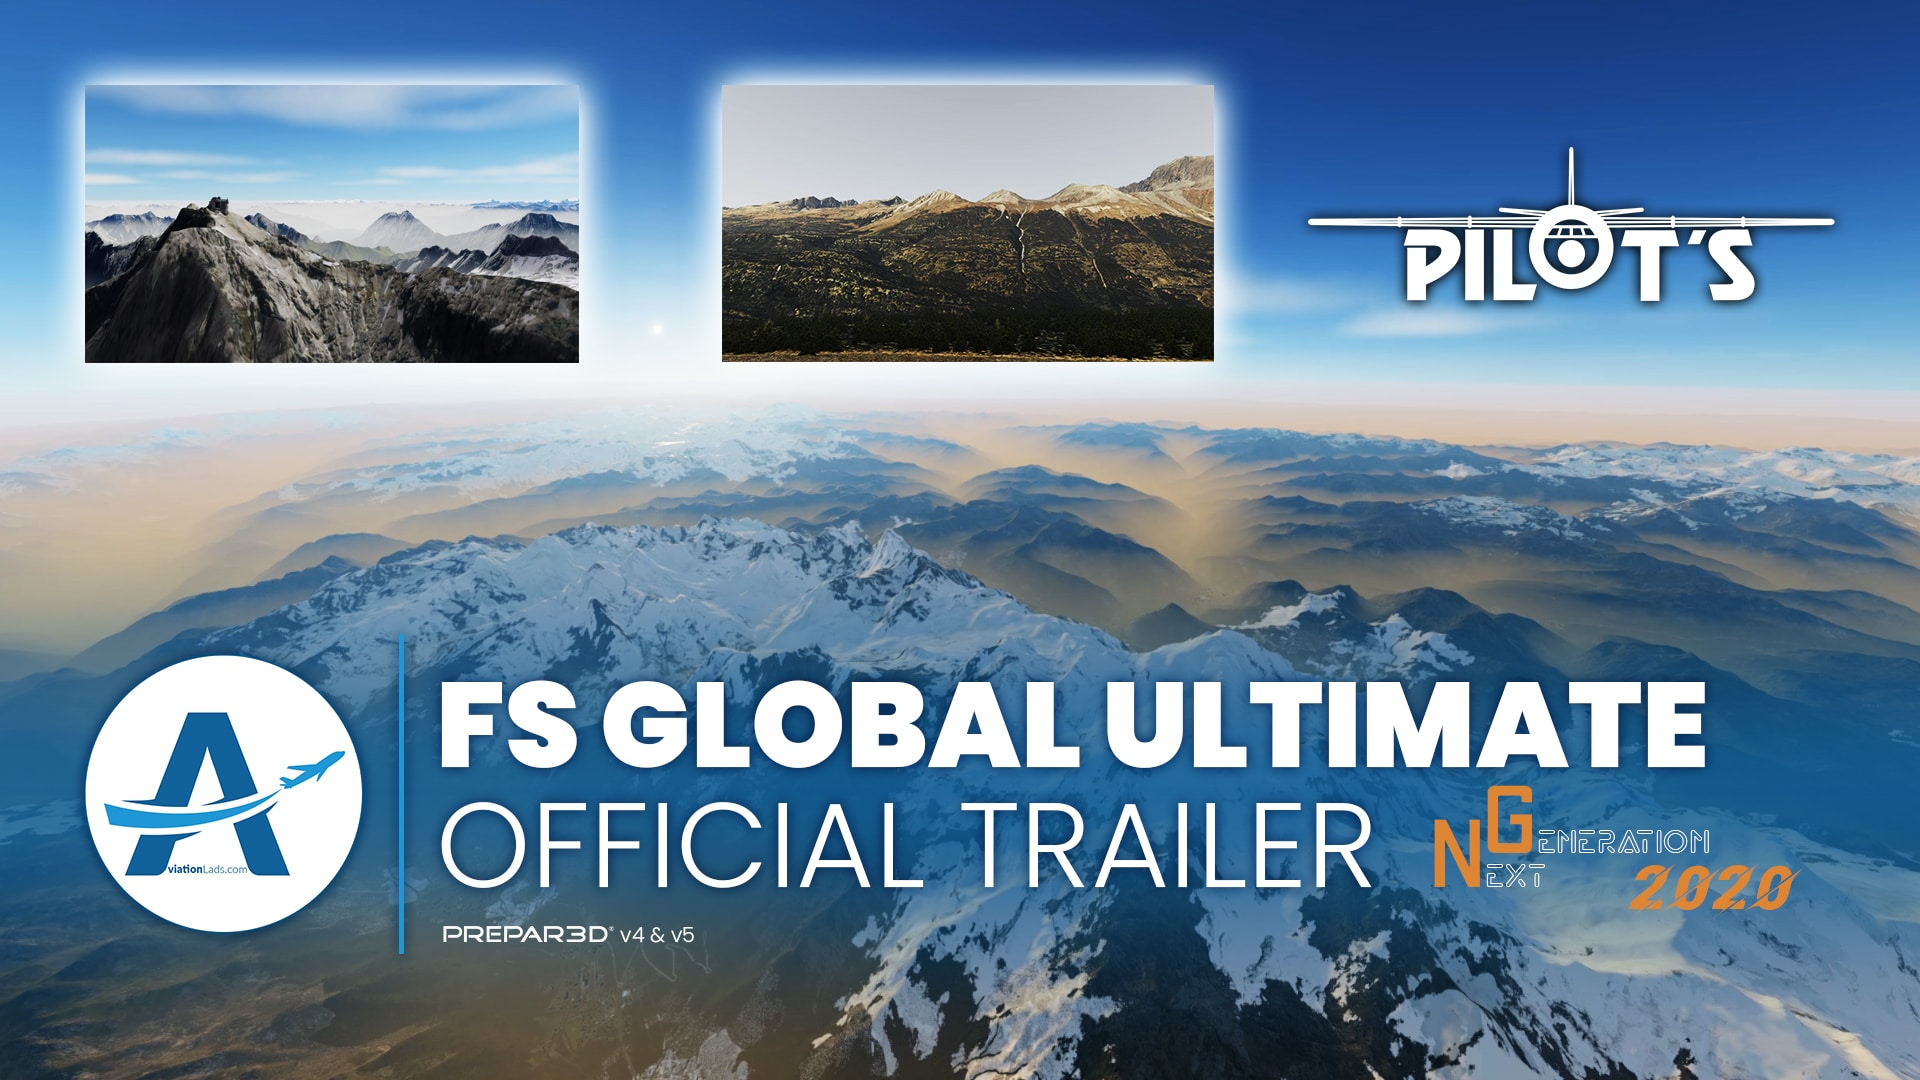 [TRAILER] PILOT'S – FS Global Ultimate